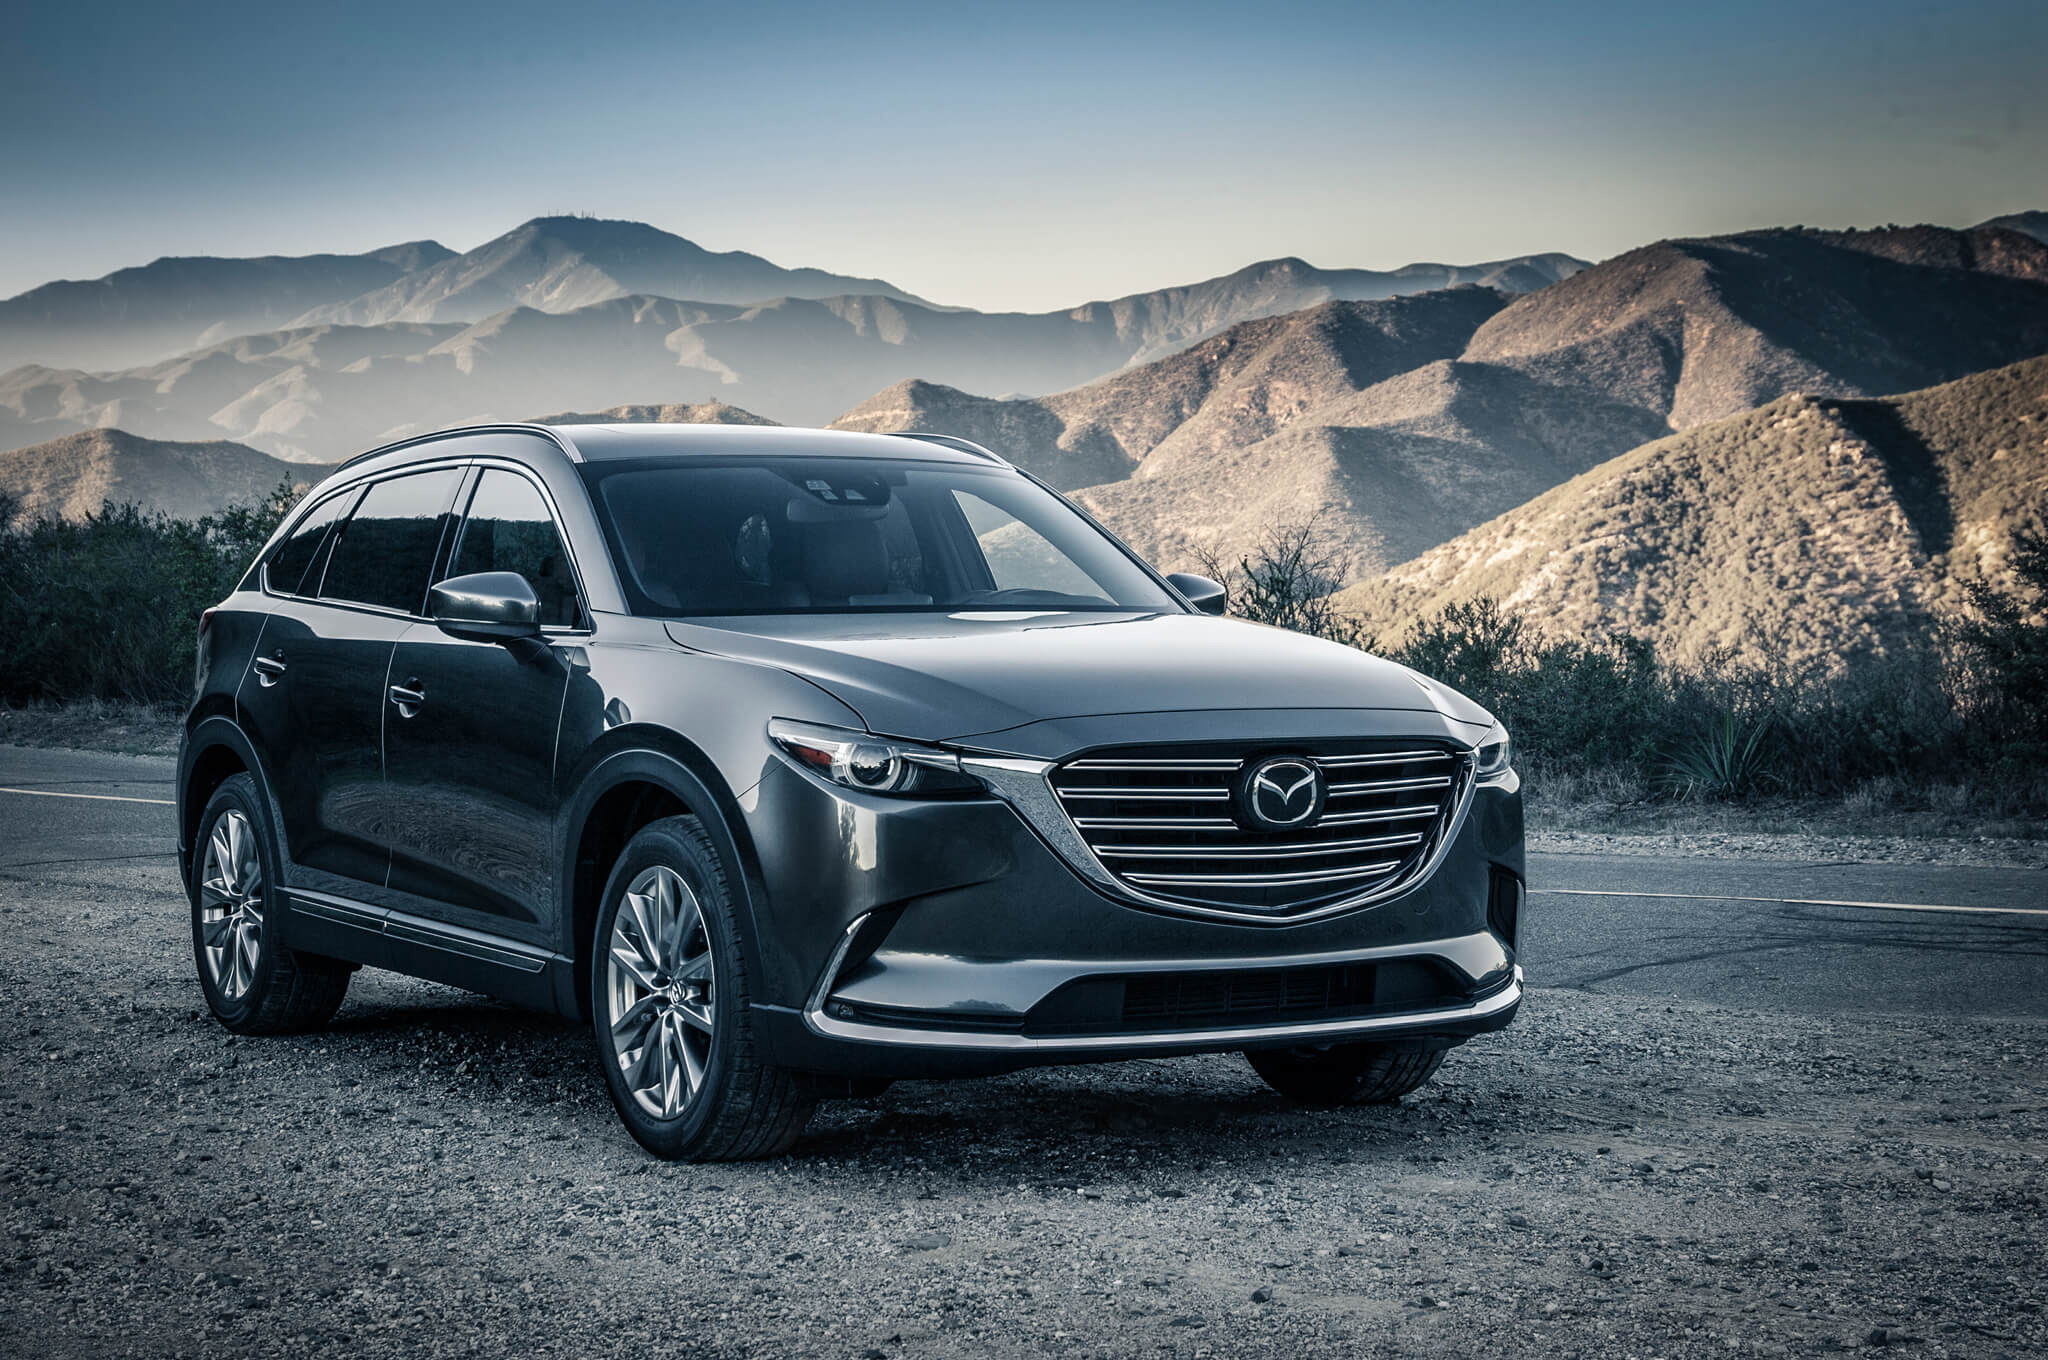 Photo of Yeni Mazda CX-9'un üretimine başlandı